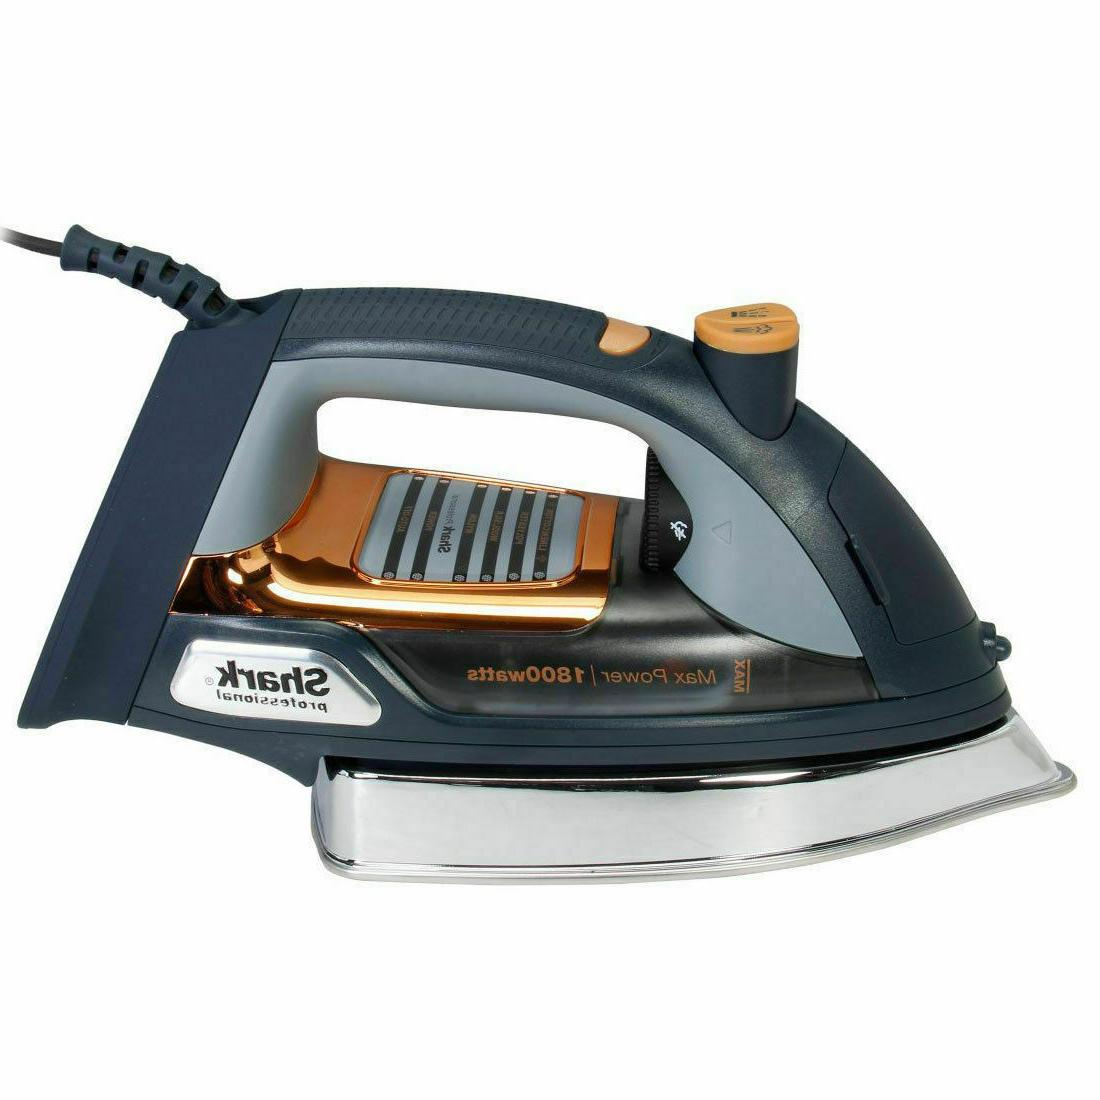 "Shark Iron 9.5"" Self-Cleaning Steam"